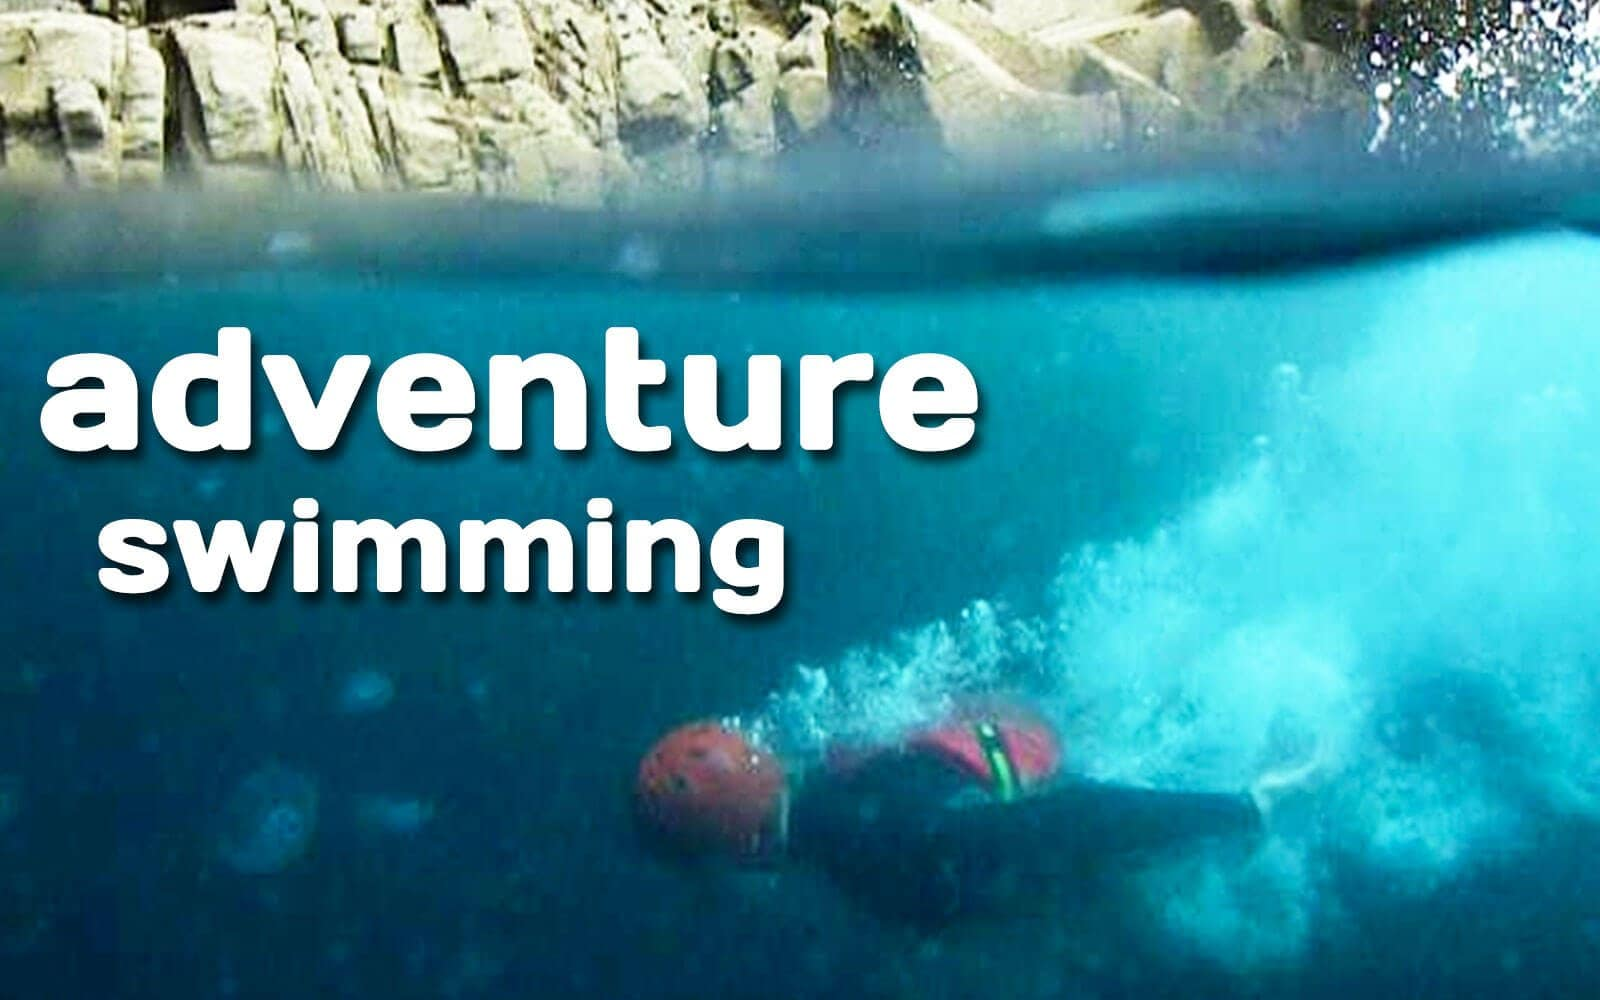 Wild swimming and adventure swimming underwater in the clear blue water of Pembrokeshire Wales